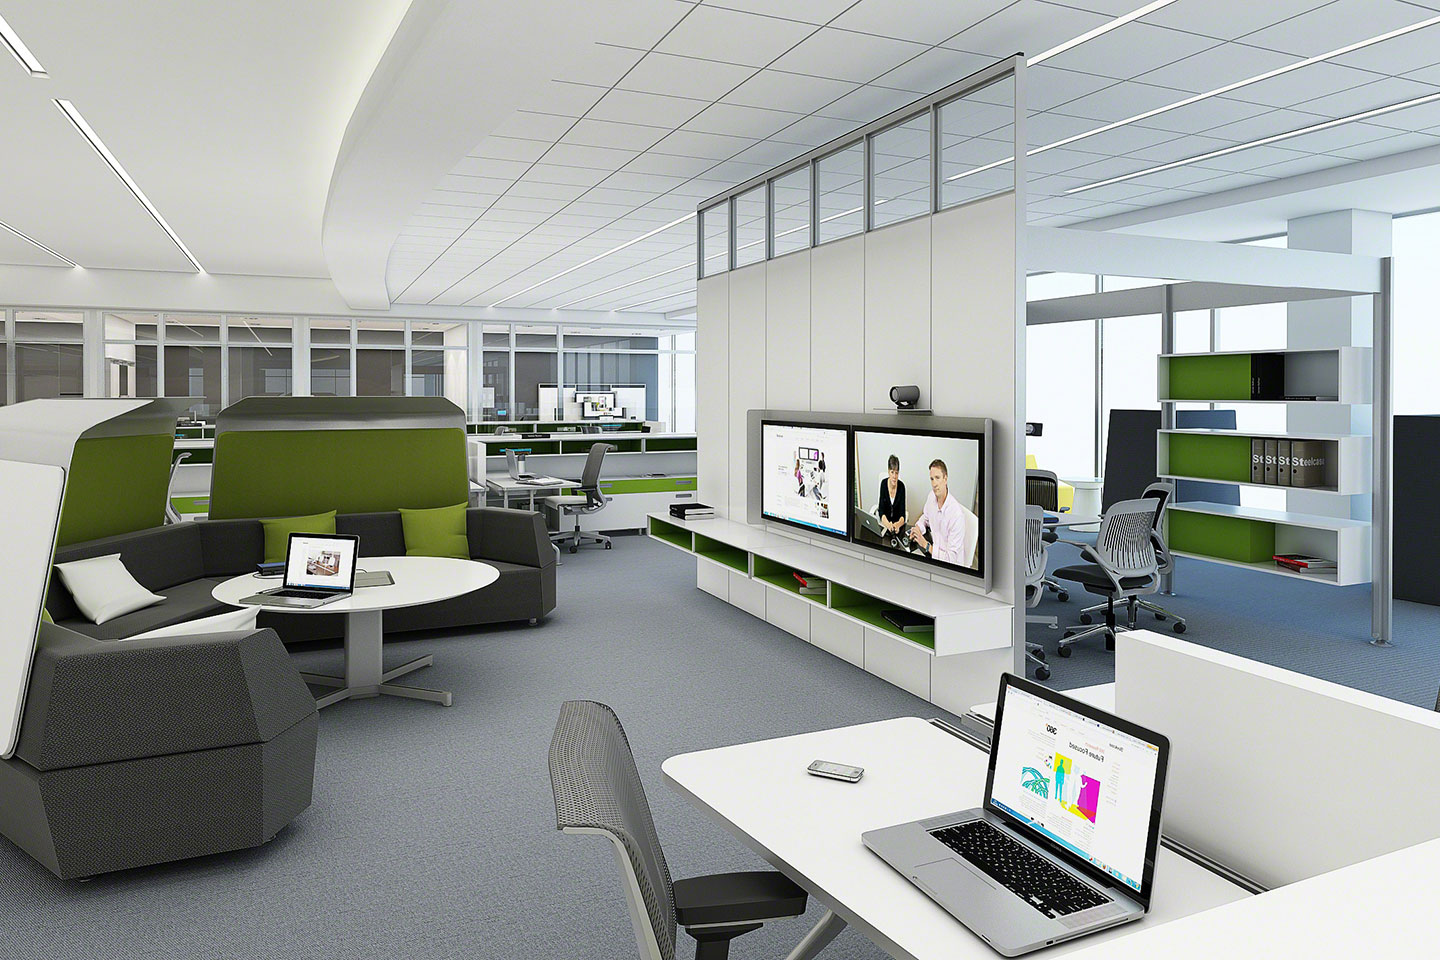 Simple office layout fixes to strengthen office for Simple office design